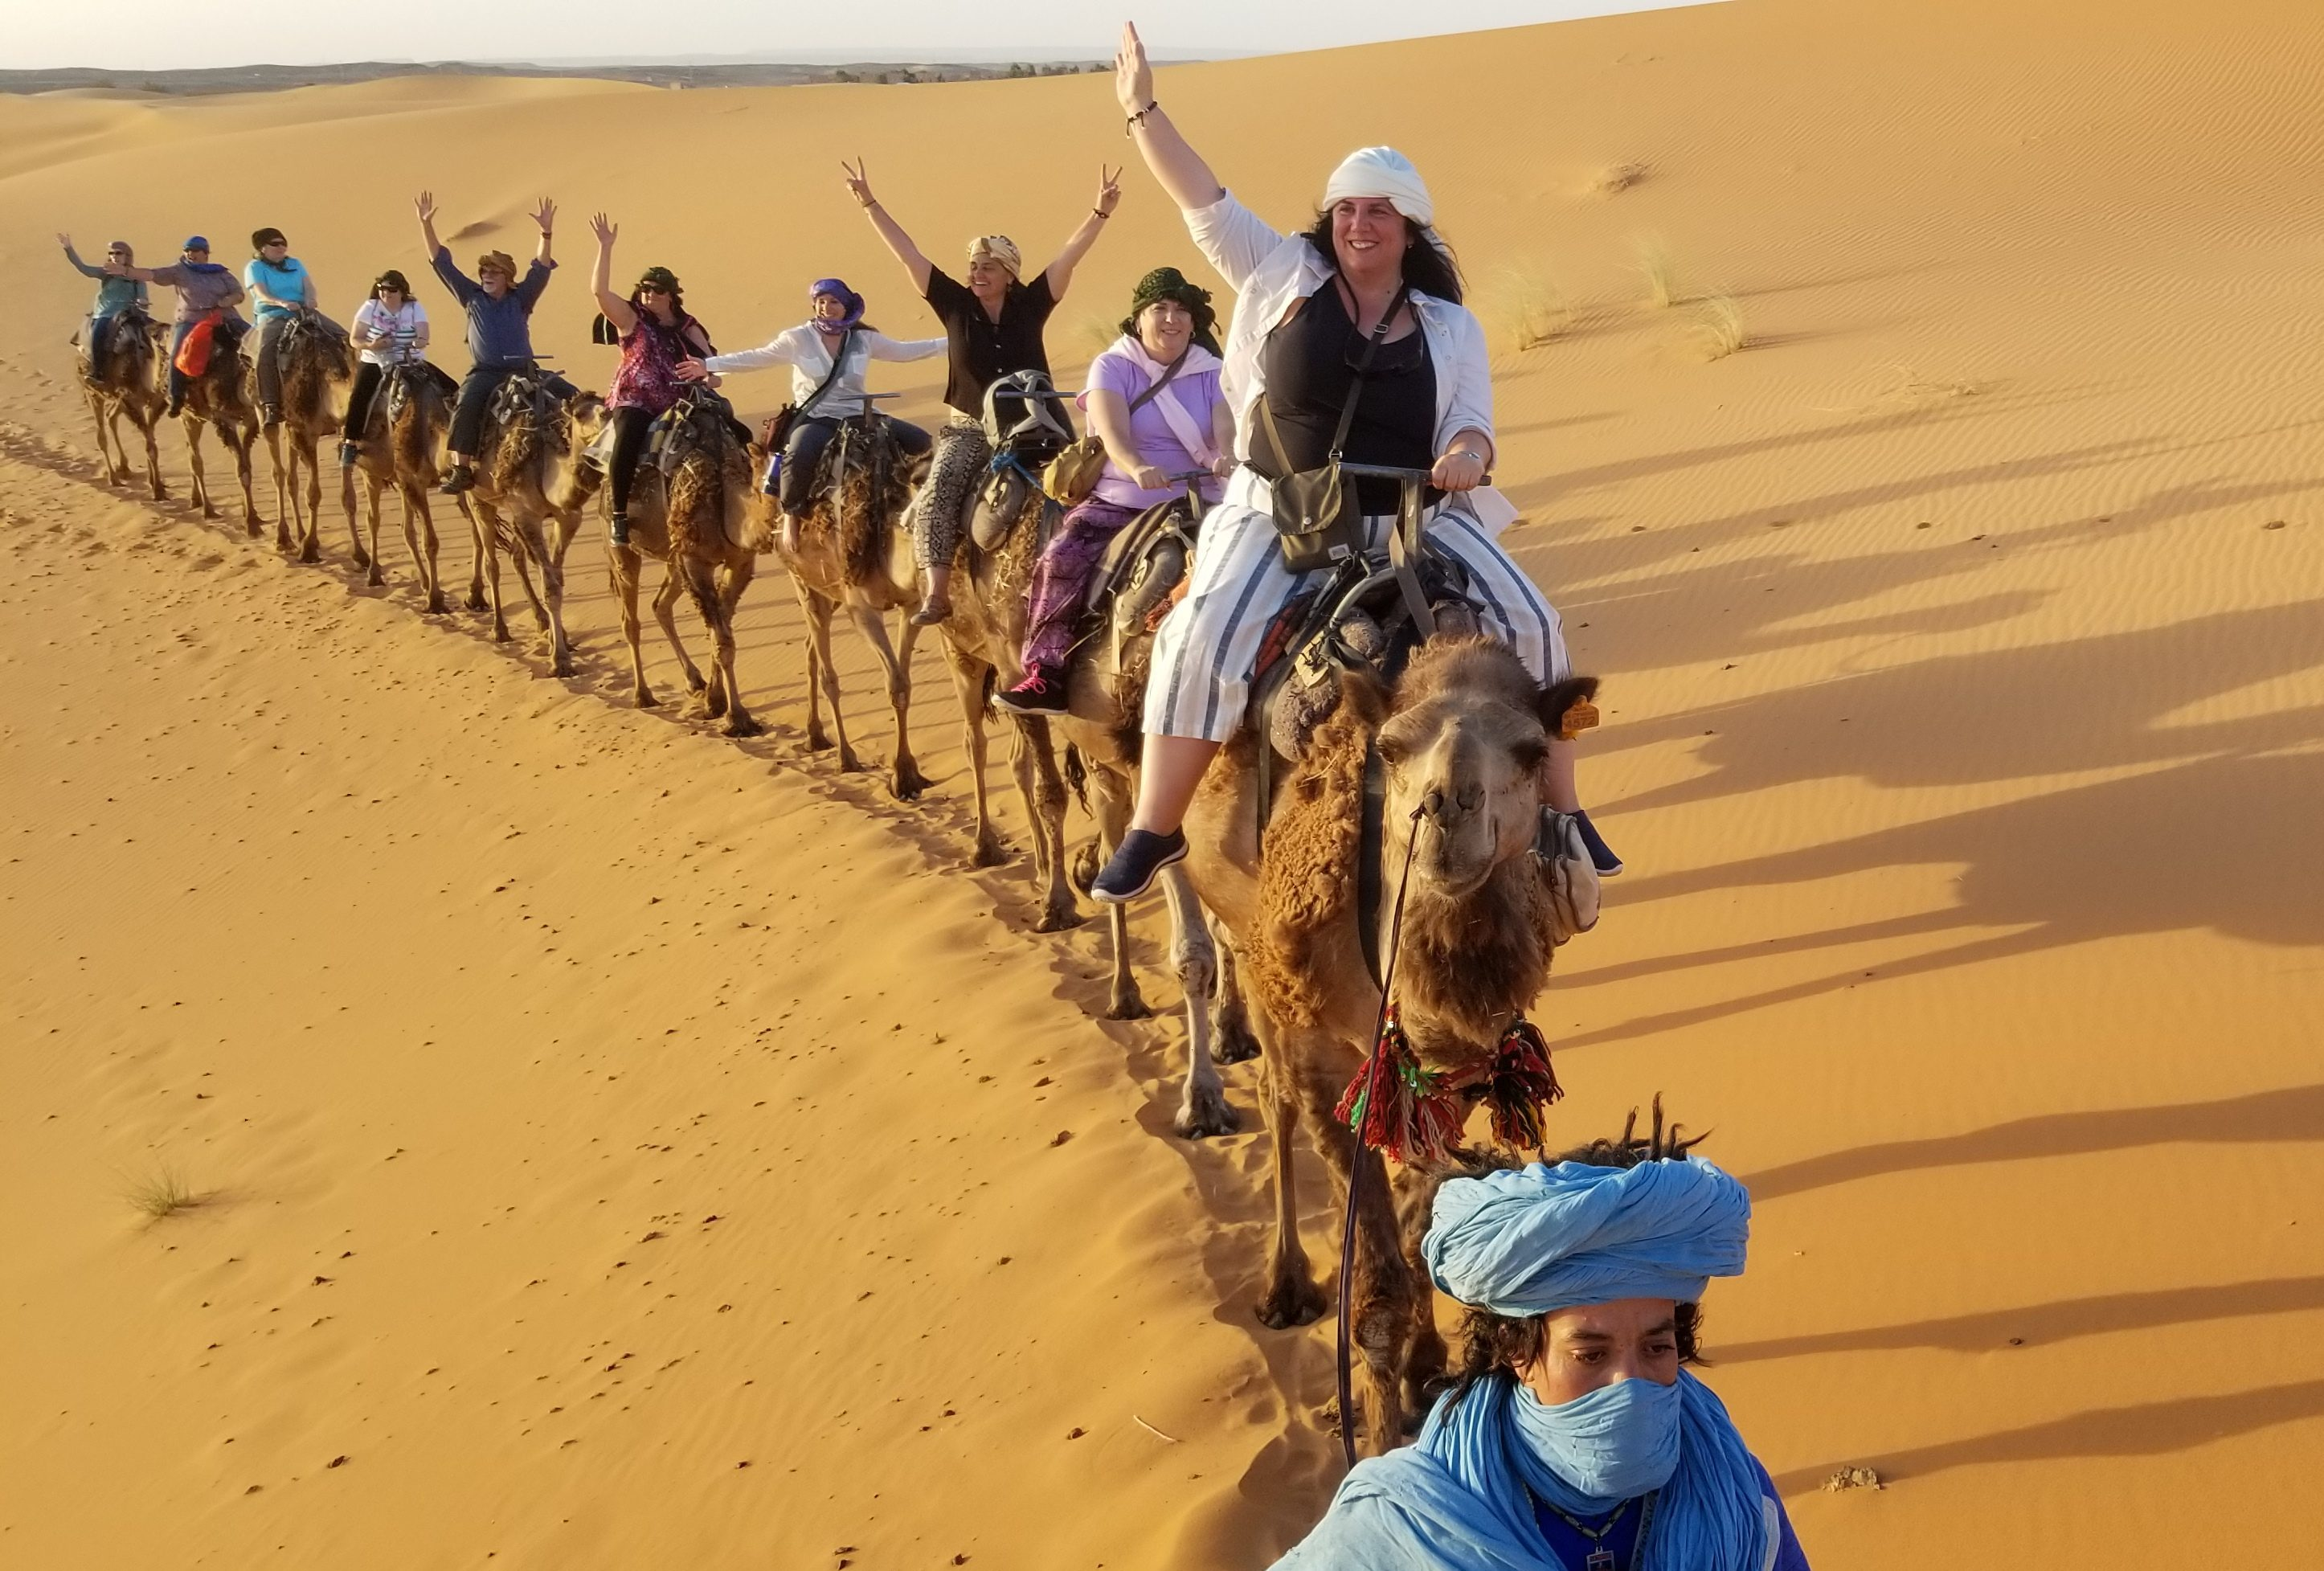 Camel train with travelers cheering